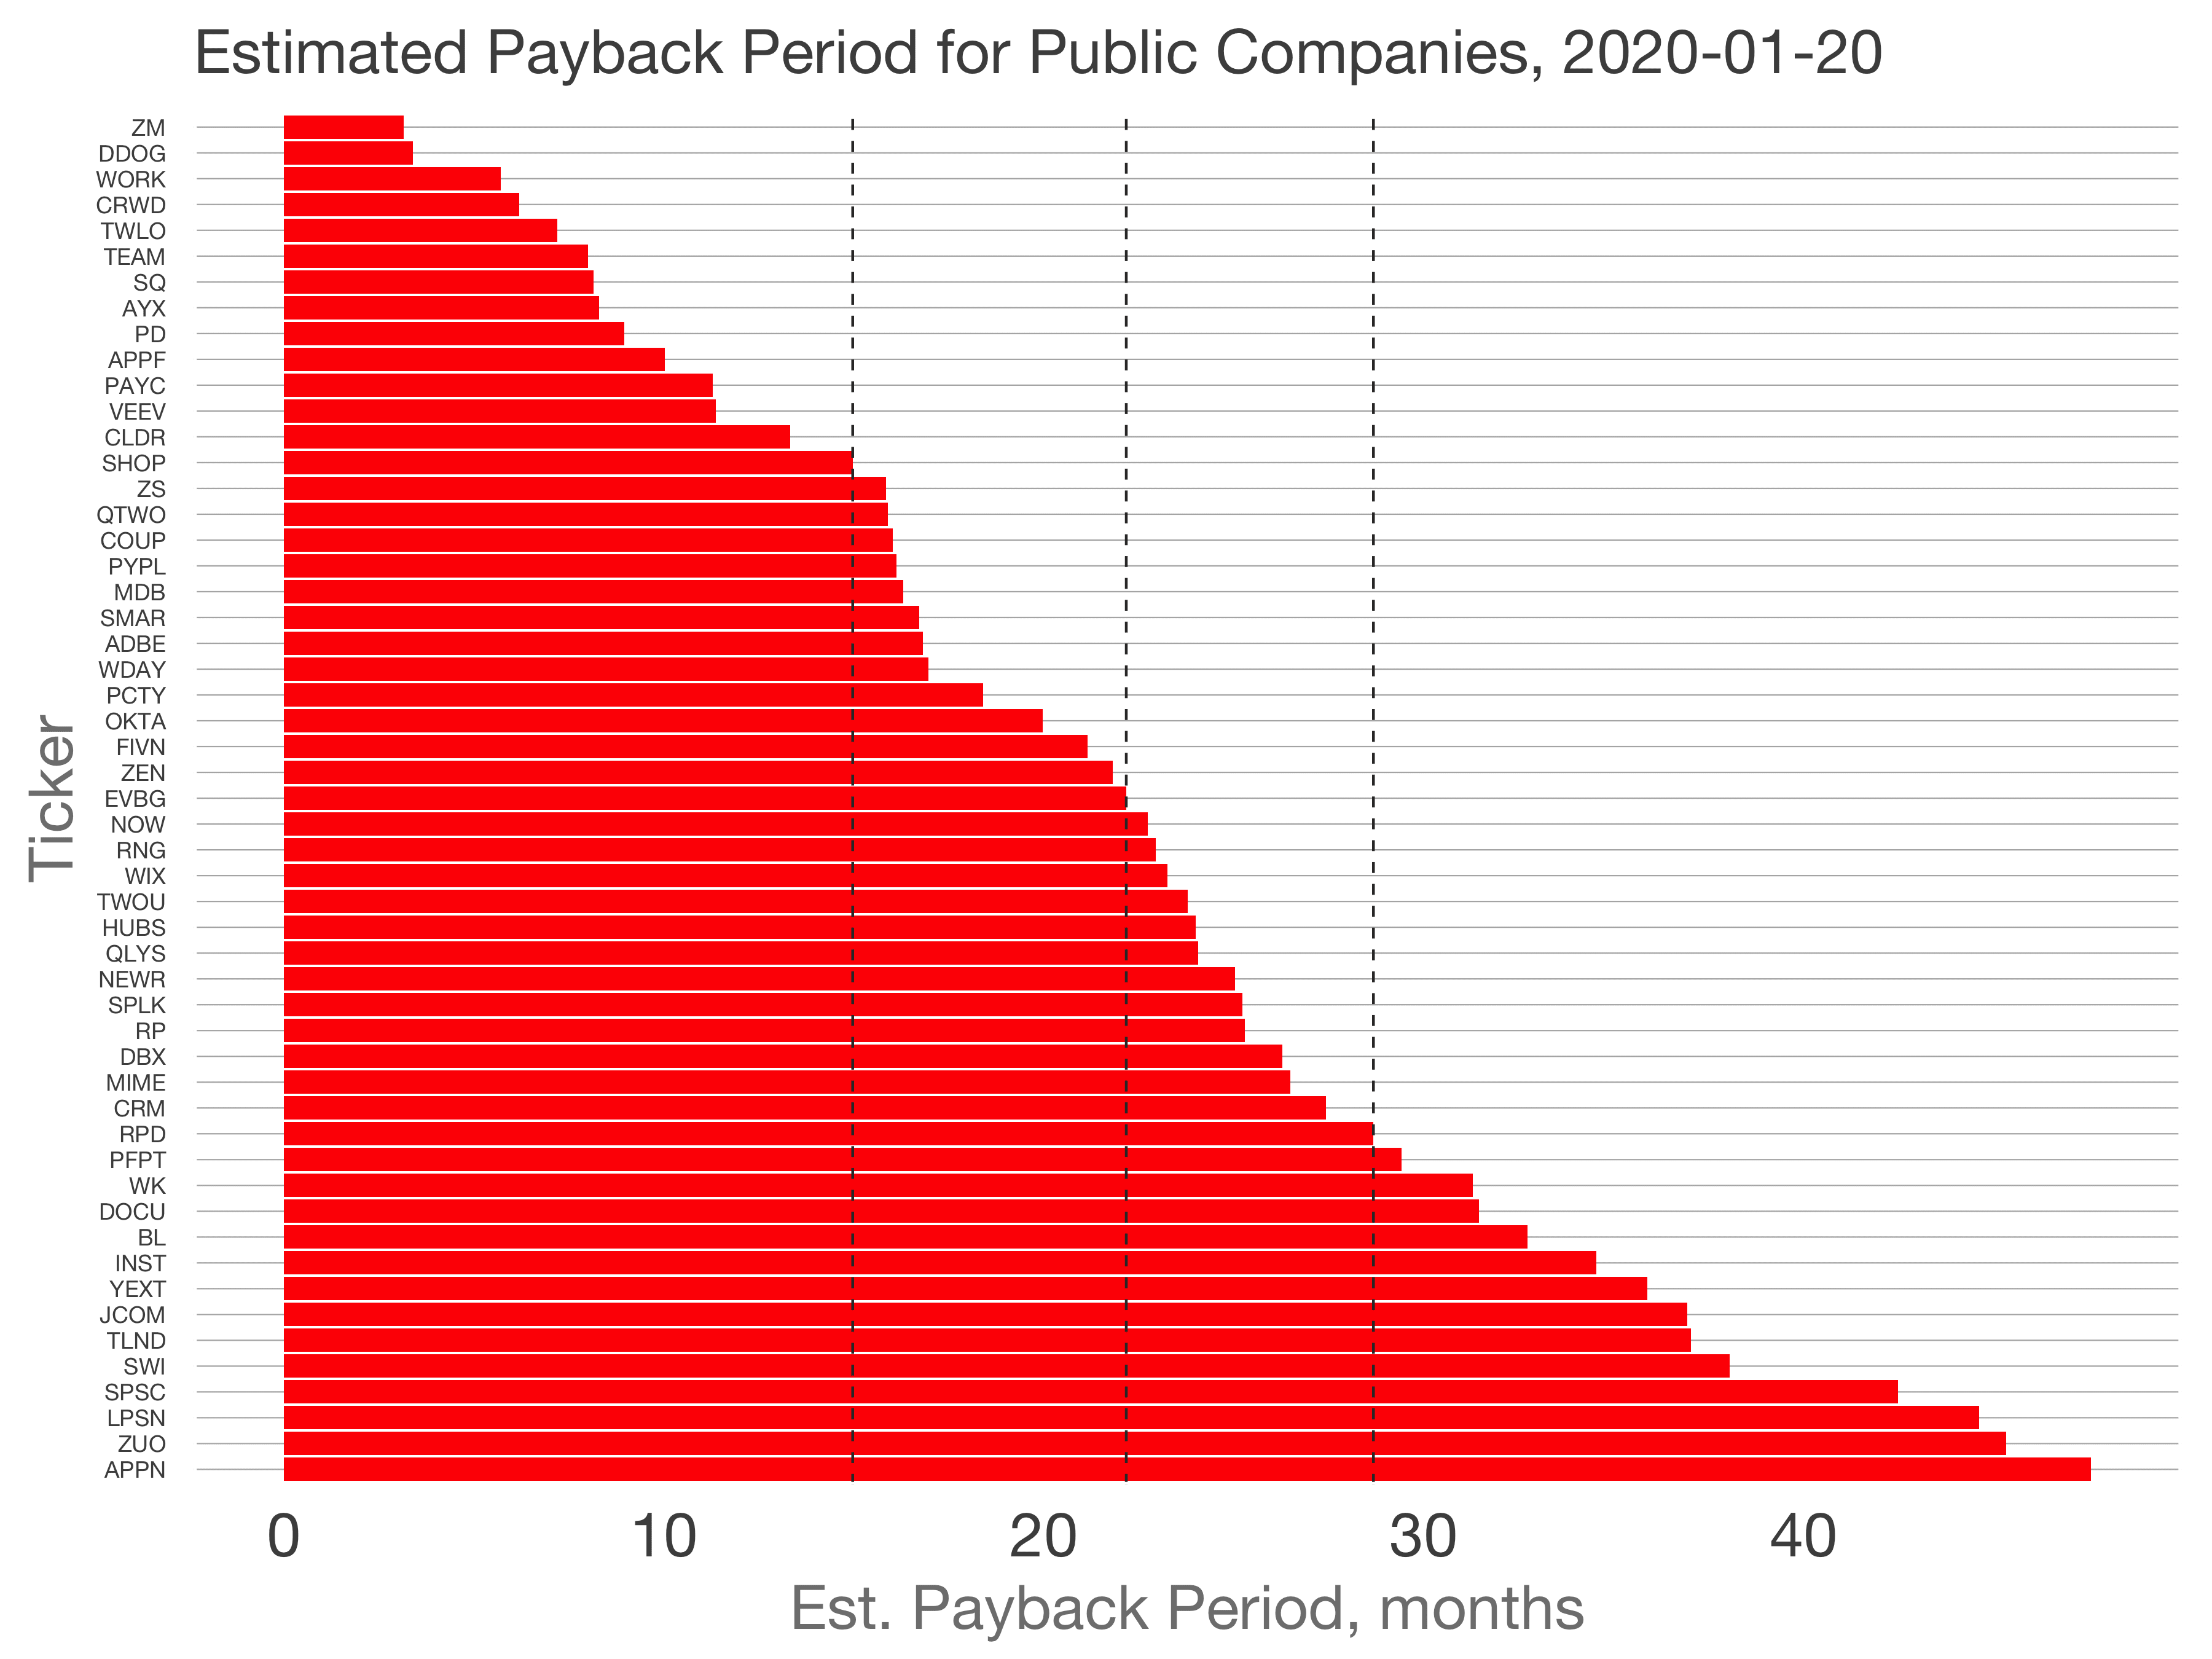 Payback period 2020 01 20